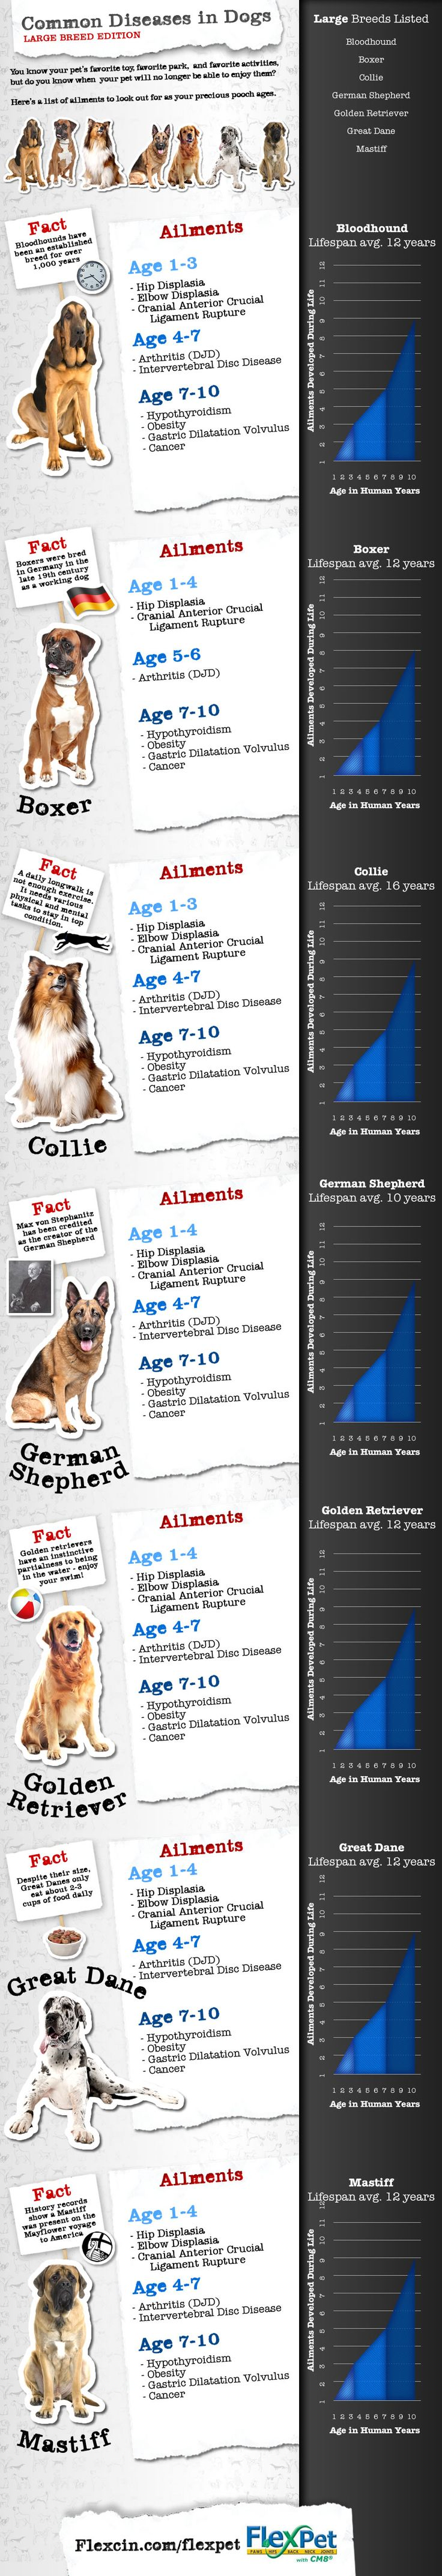 Common Diseases In Dogs | Large Breed Edition #infographic